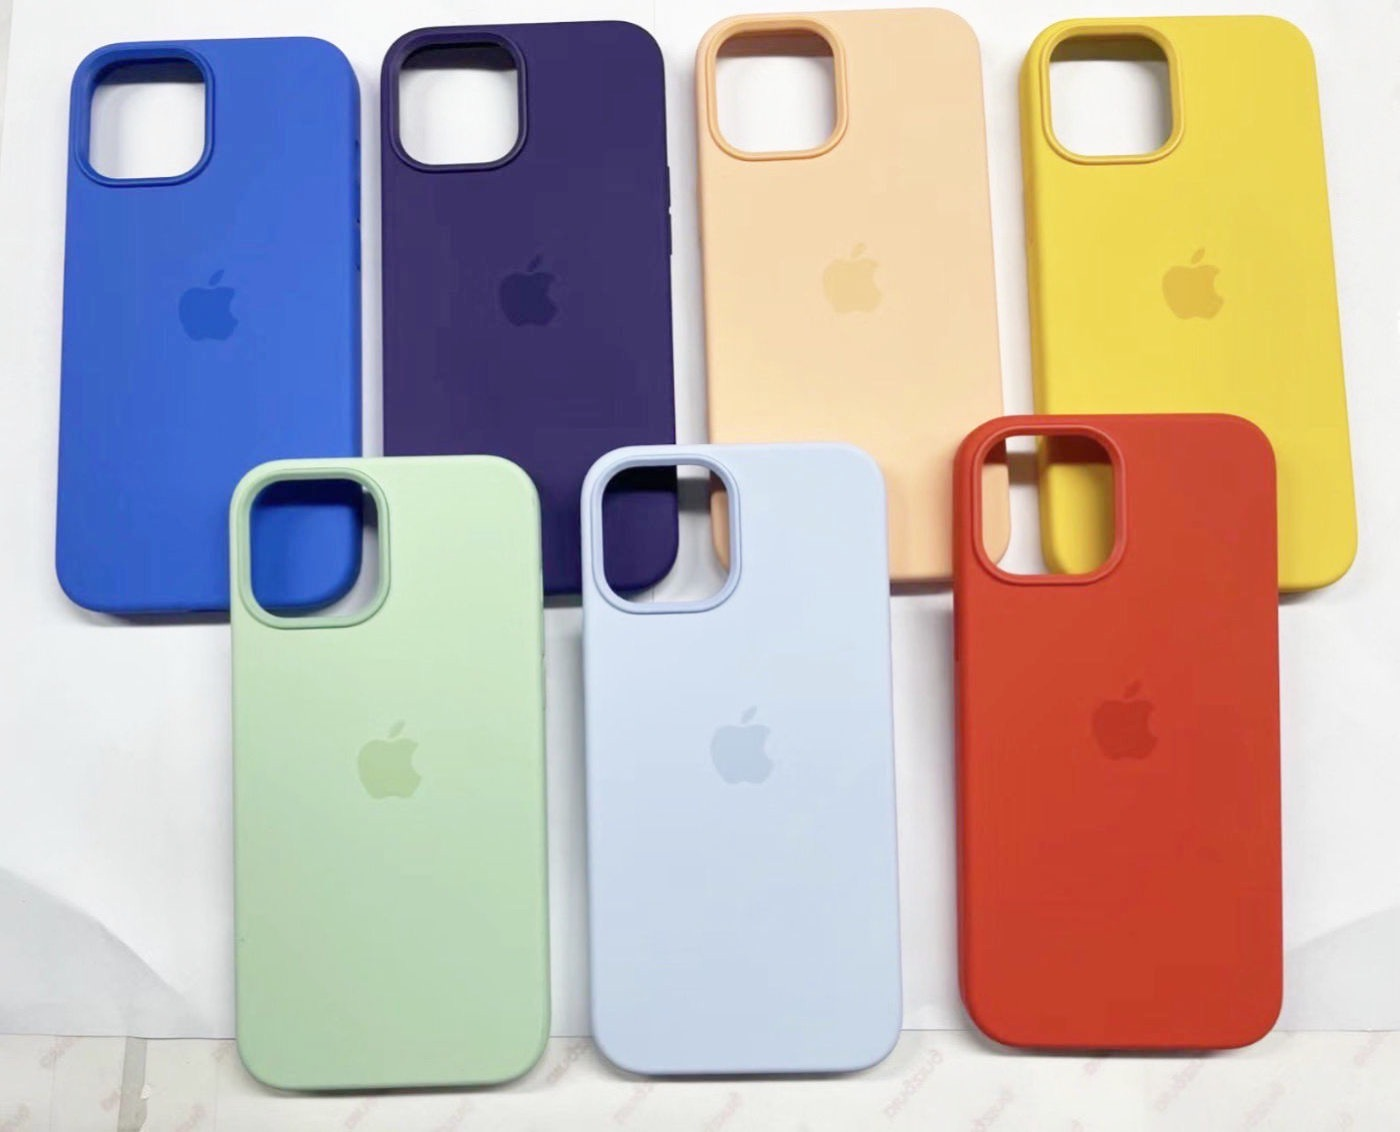 2021 Springcolor iPhone12case 01